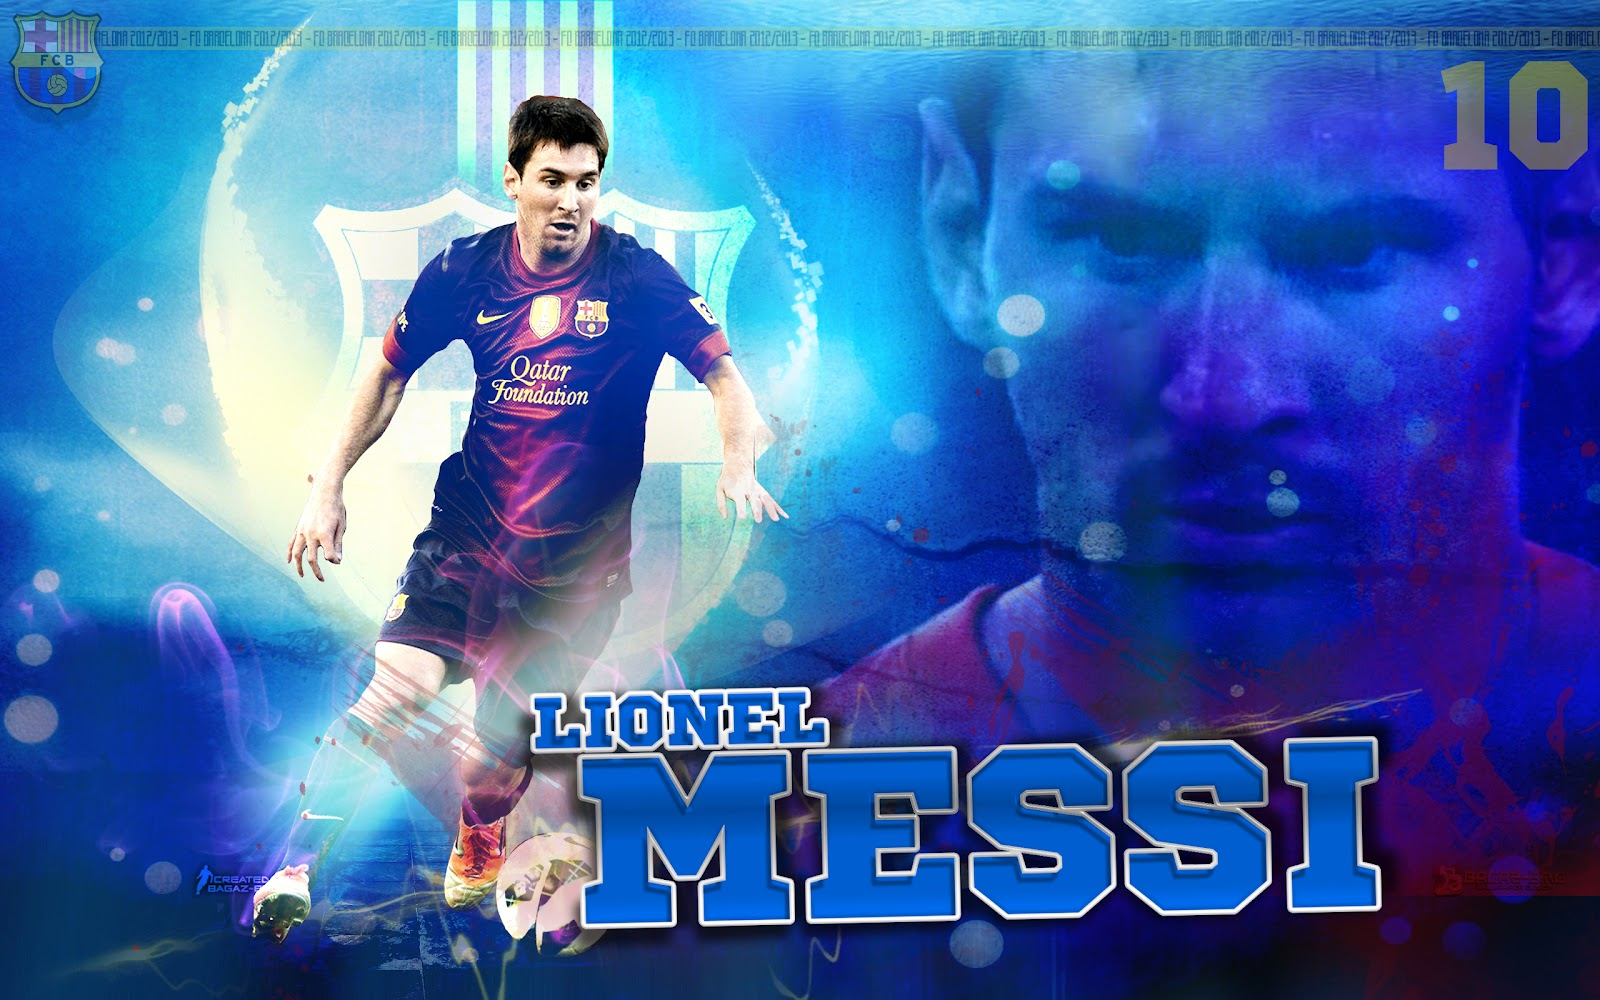 Messi Barcelona HD Wallpaper 2013